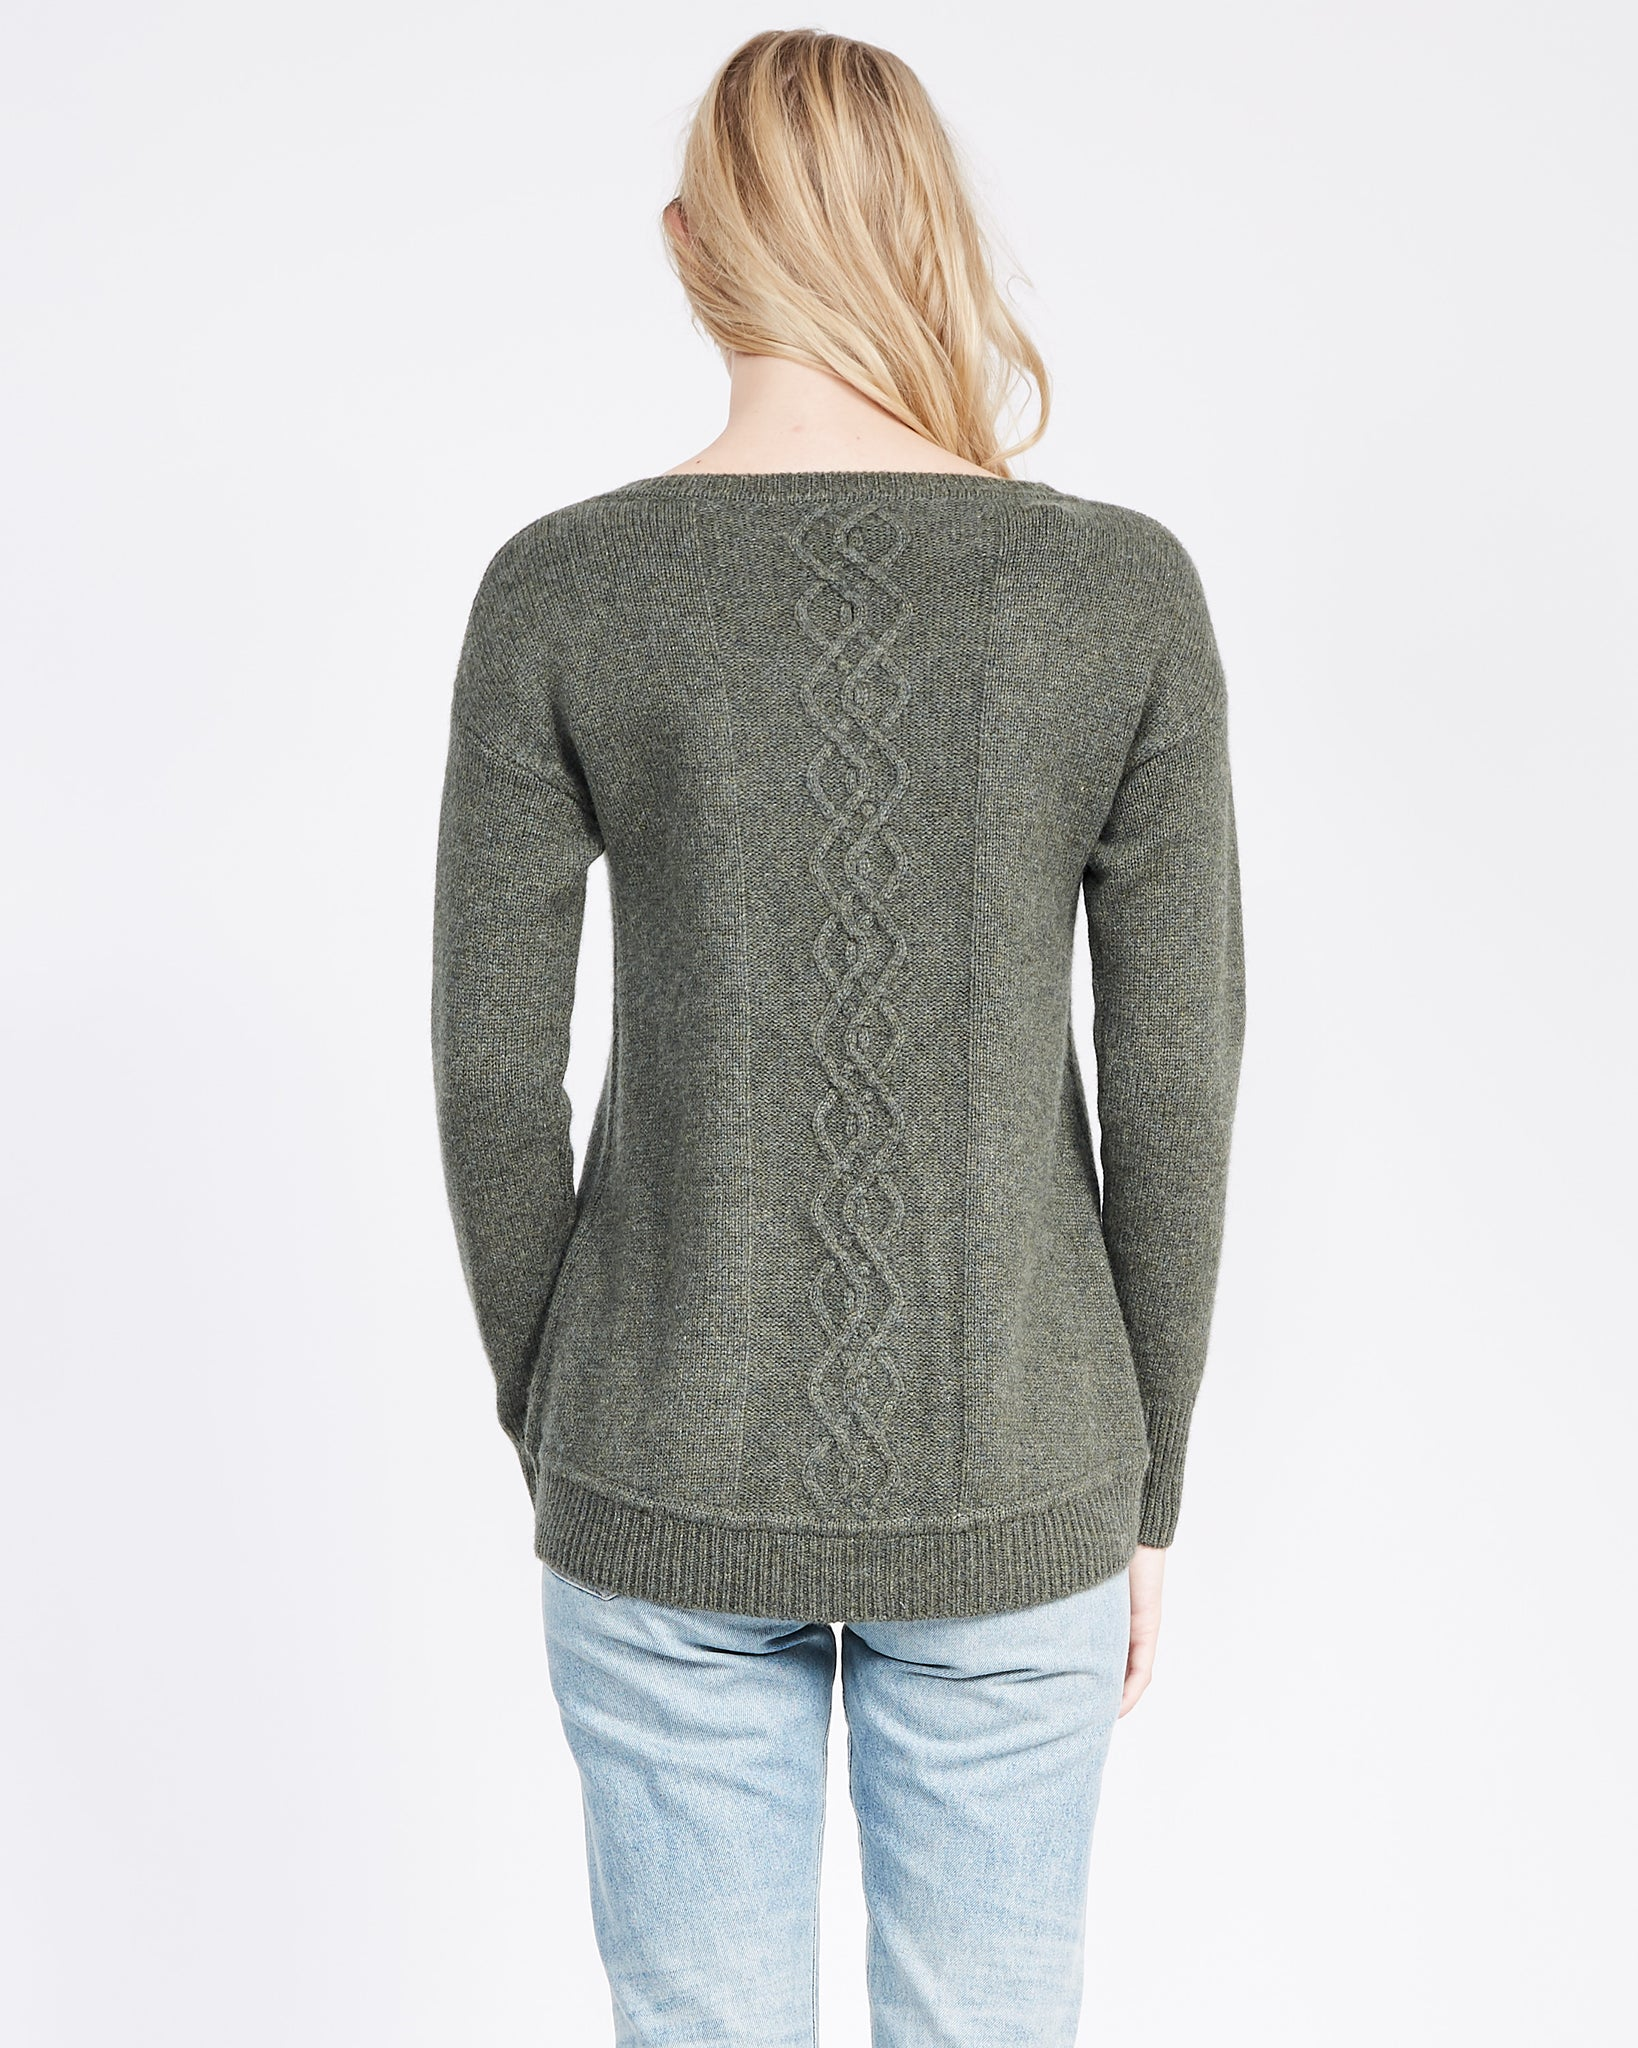 cable stitch detail sweater